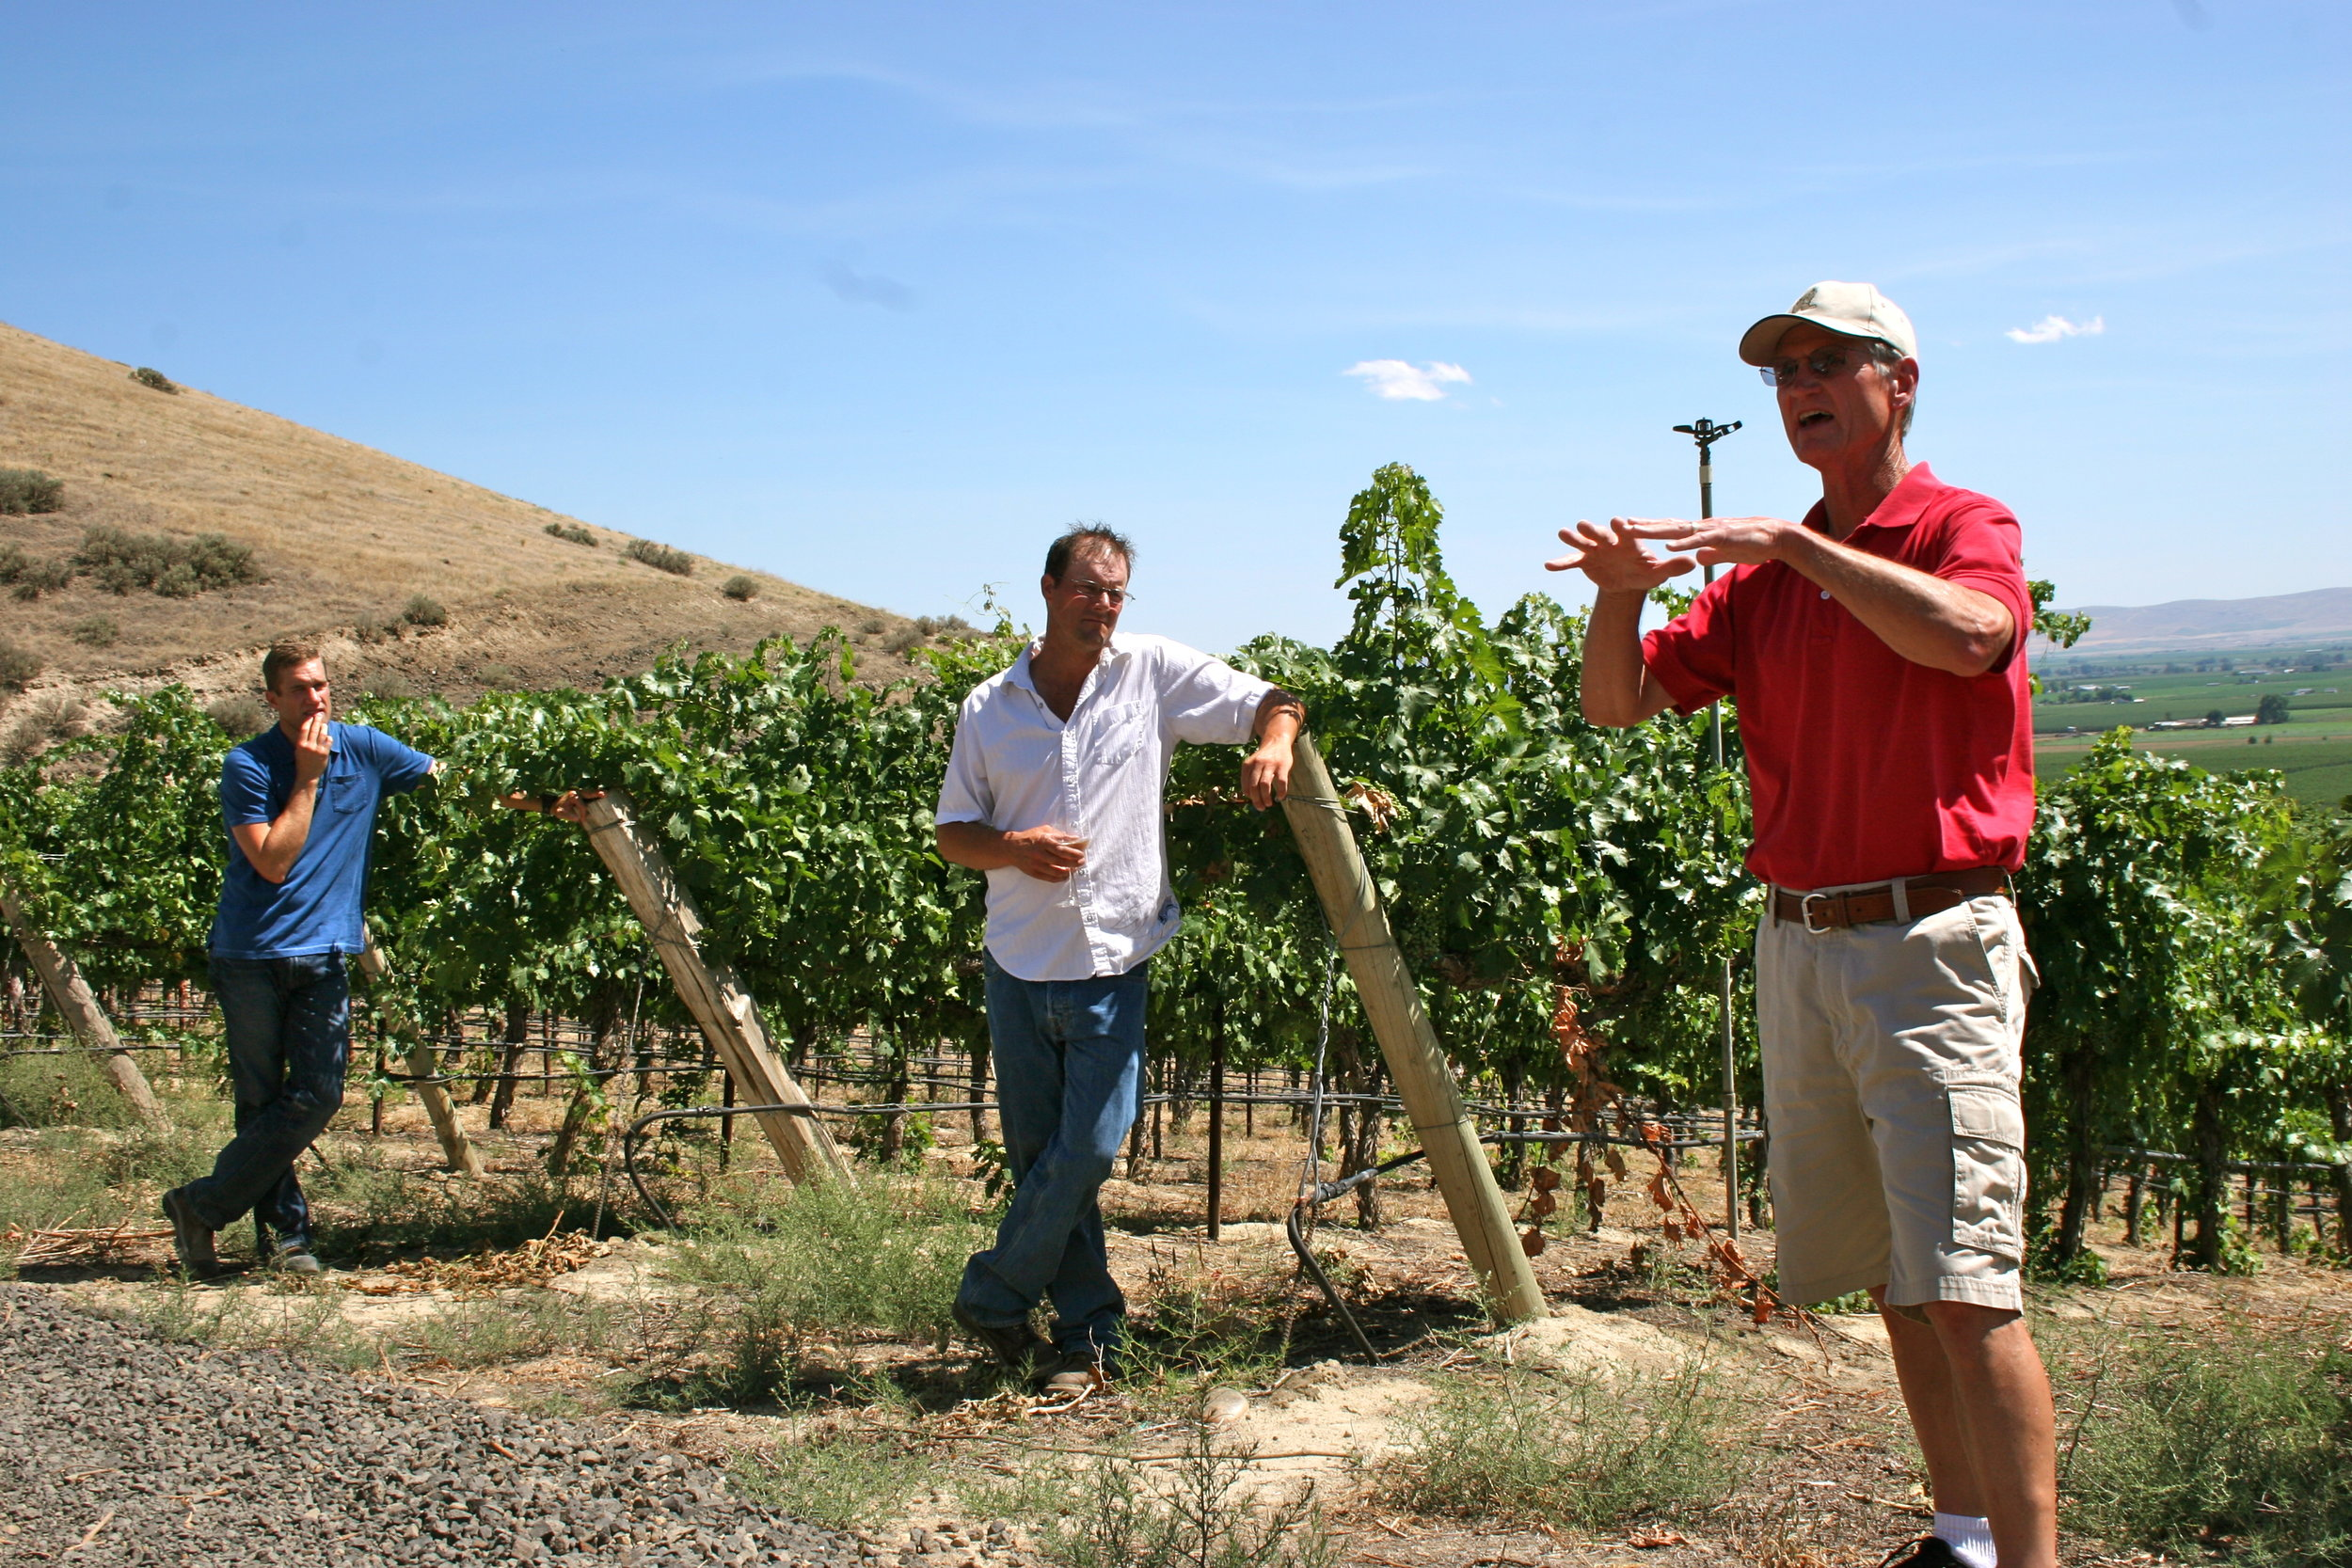 Wade Wolfe, winemaker at Thurston Wolfe (in red), with Todd Newhouse of Upland Winery and John Martinez of Maison Bleue Winery. Courtesy of Wine Yakima Valley.